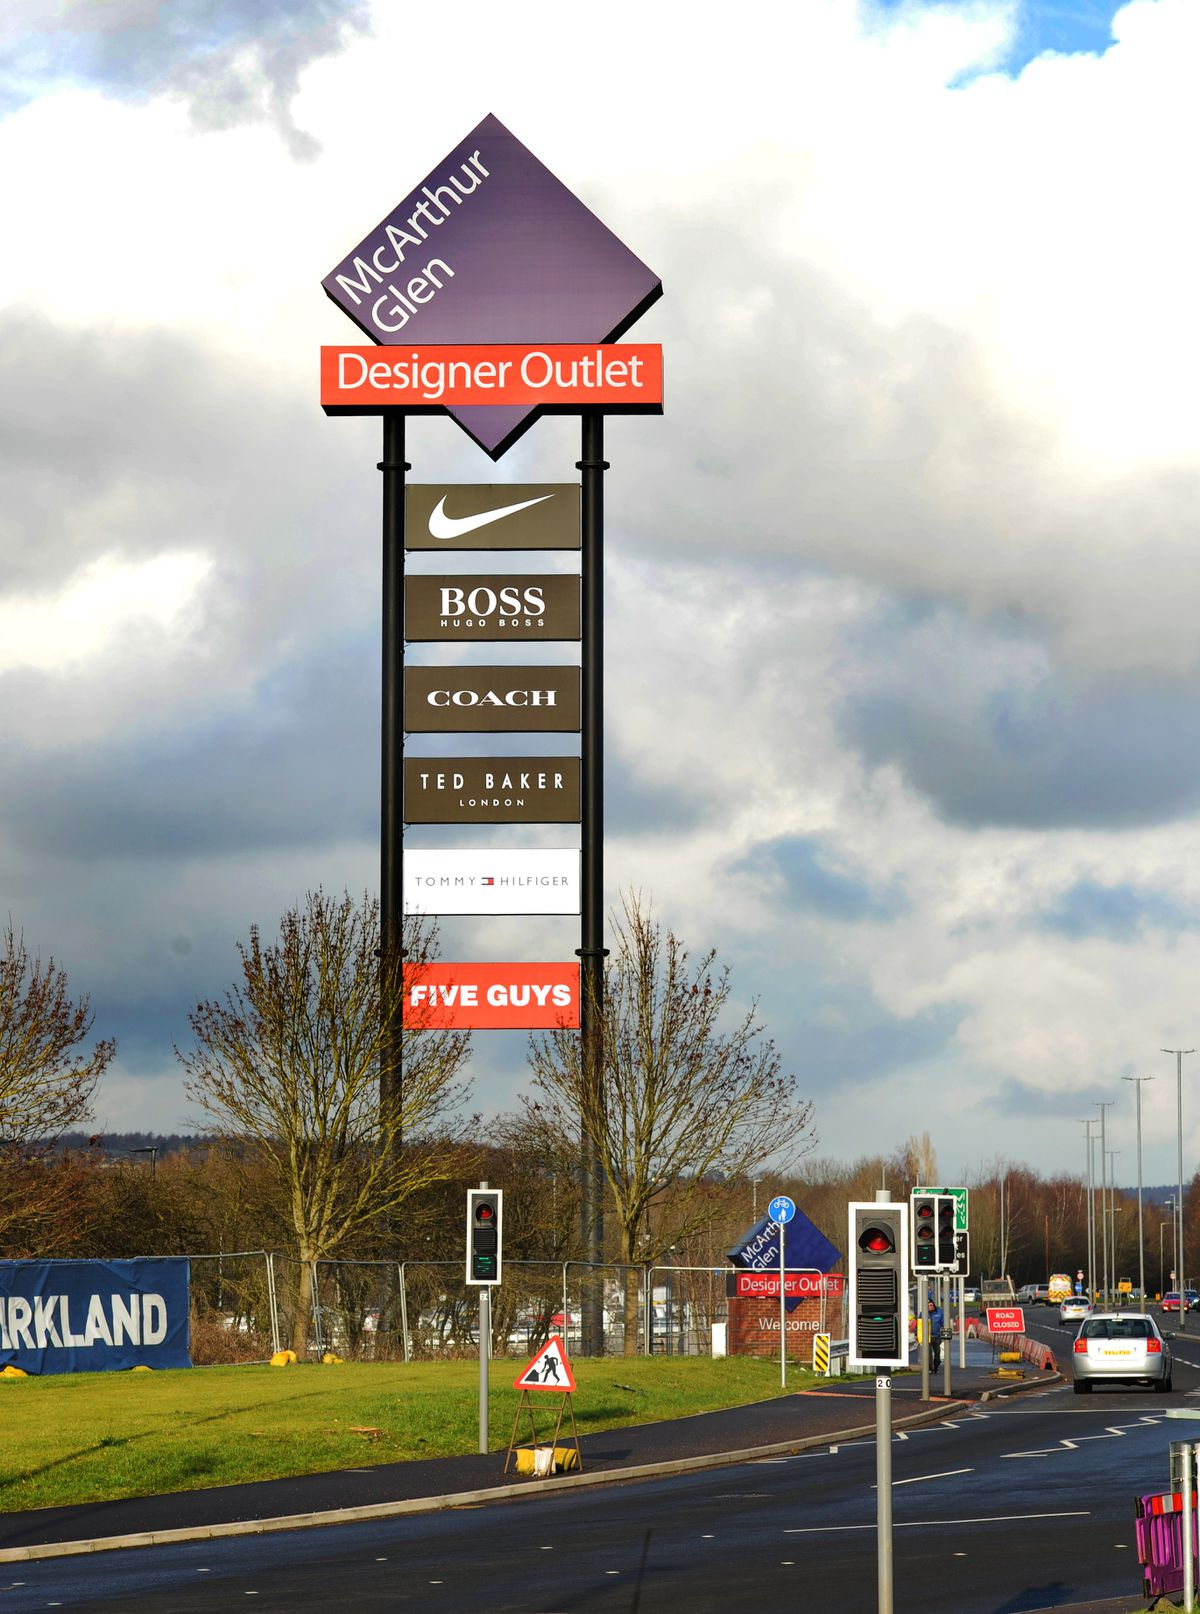 The sign installed at the new designer outlet